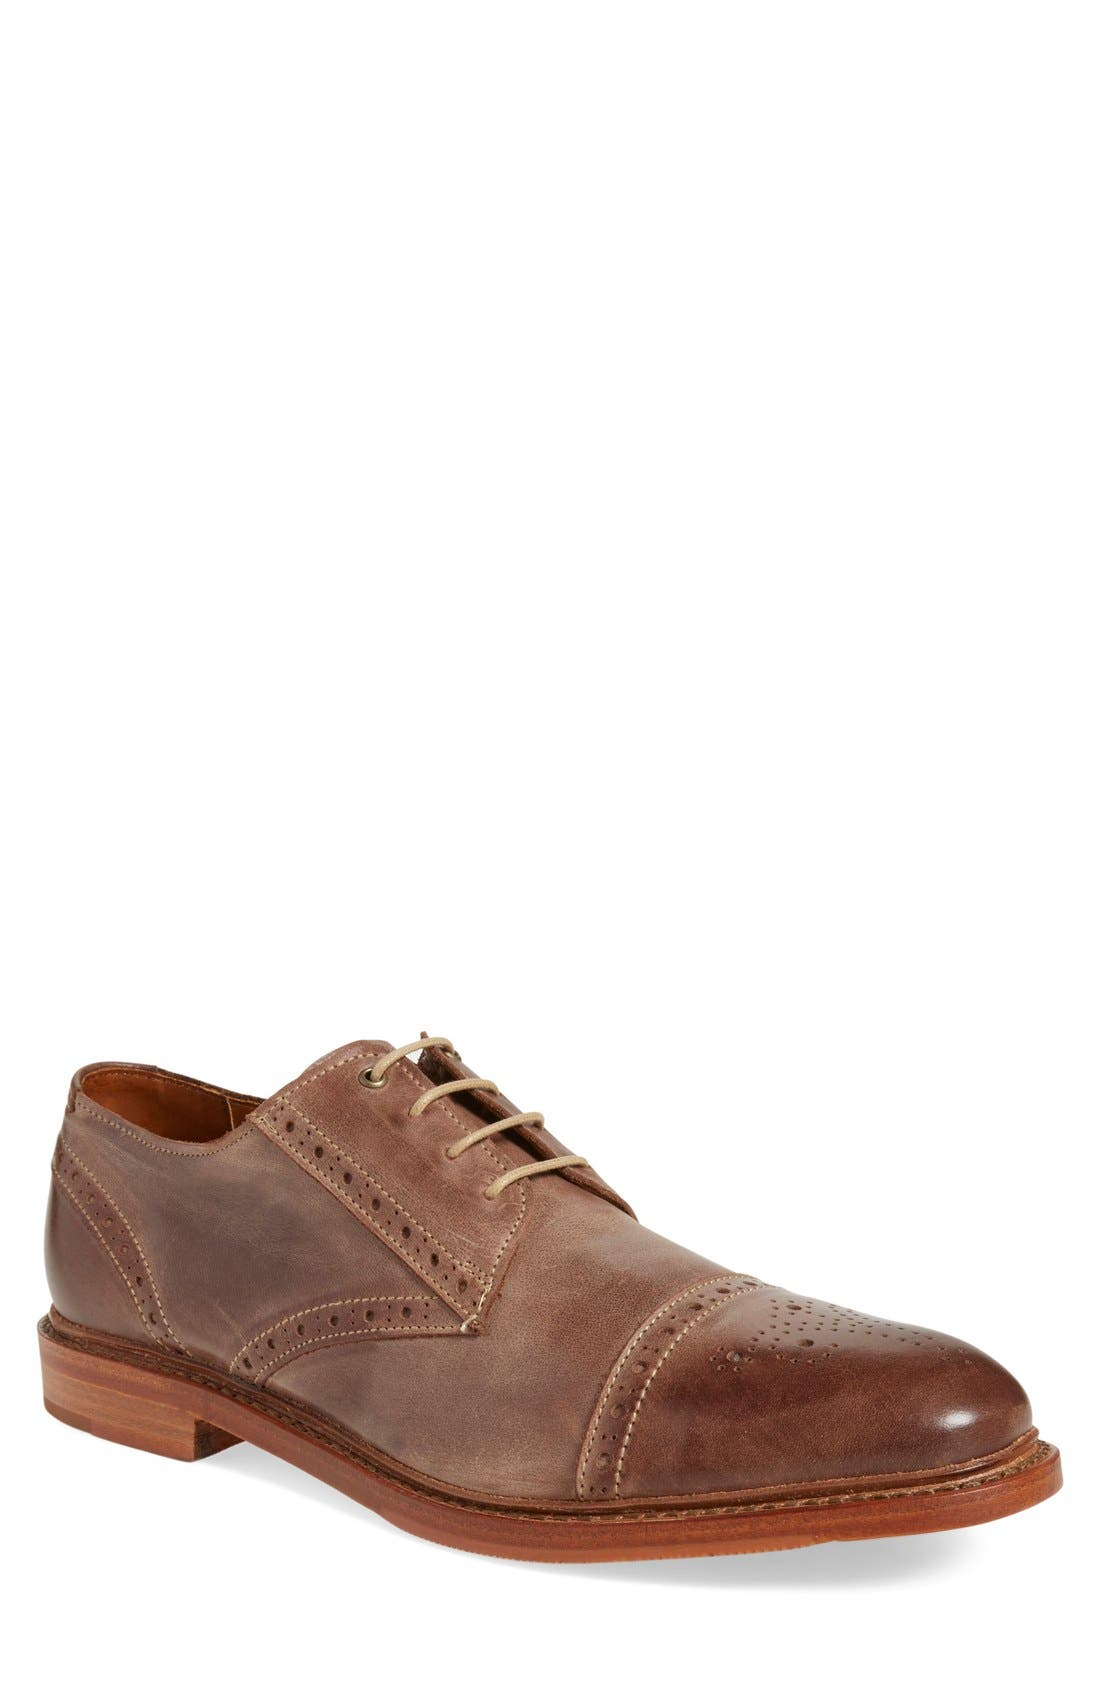 'Bainbridge' Cap Toe Derby,                         Main,                         color, BROWN LEATHER